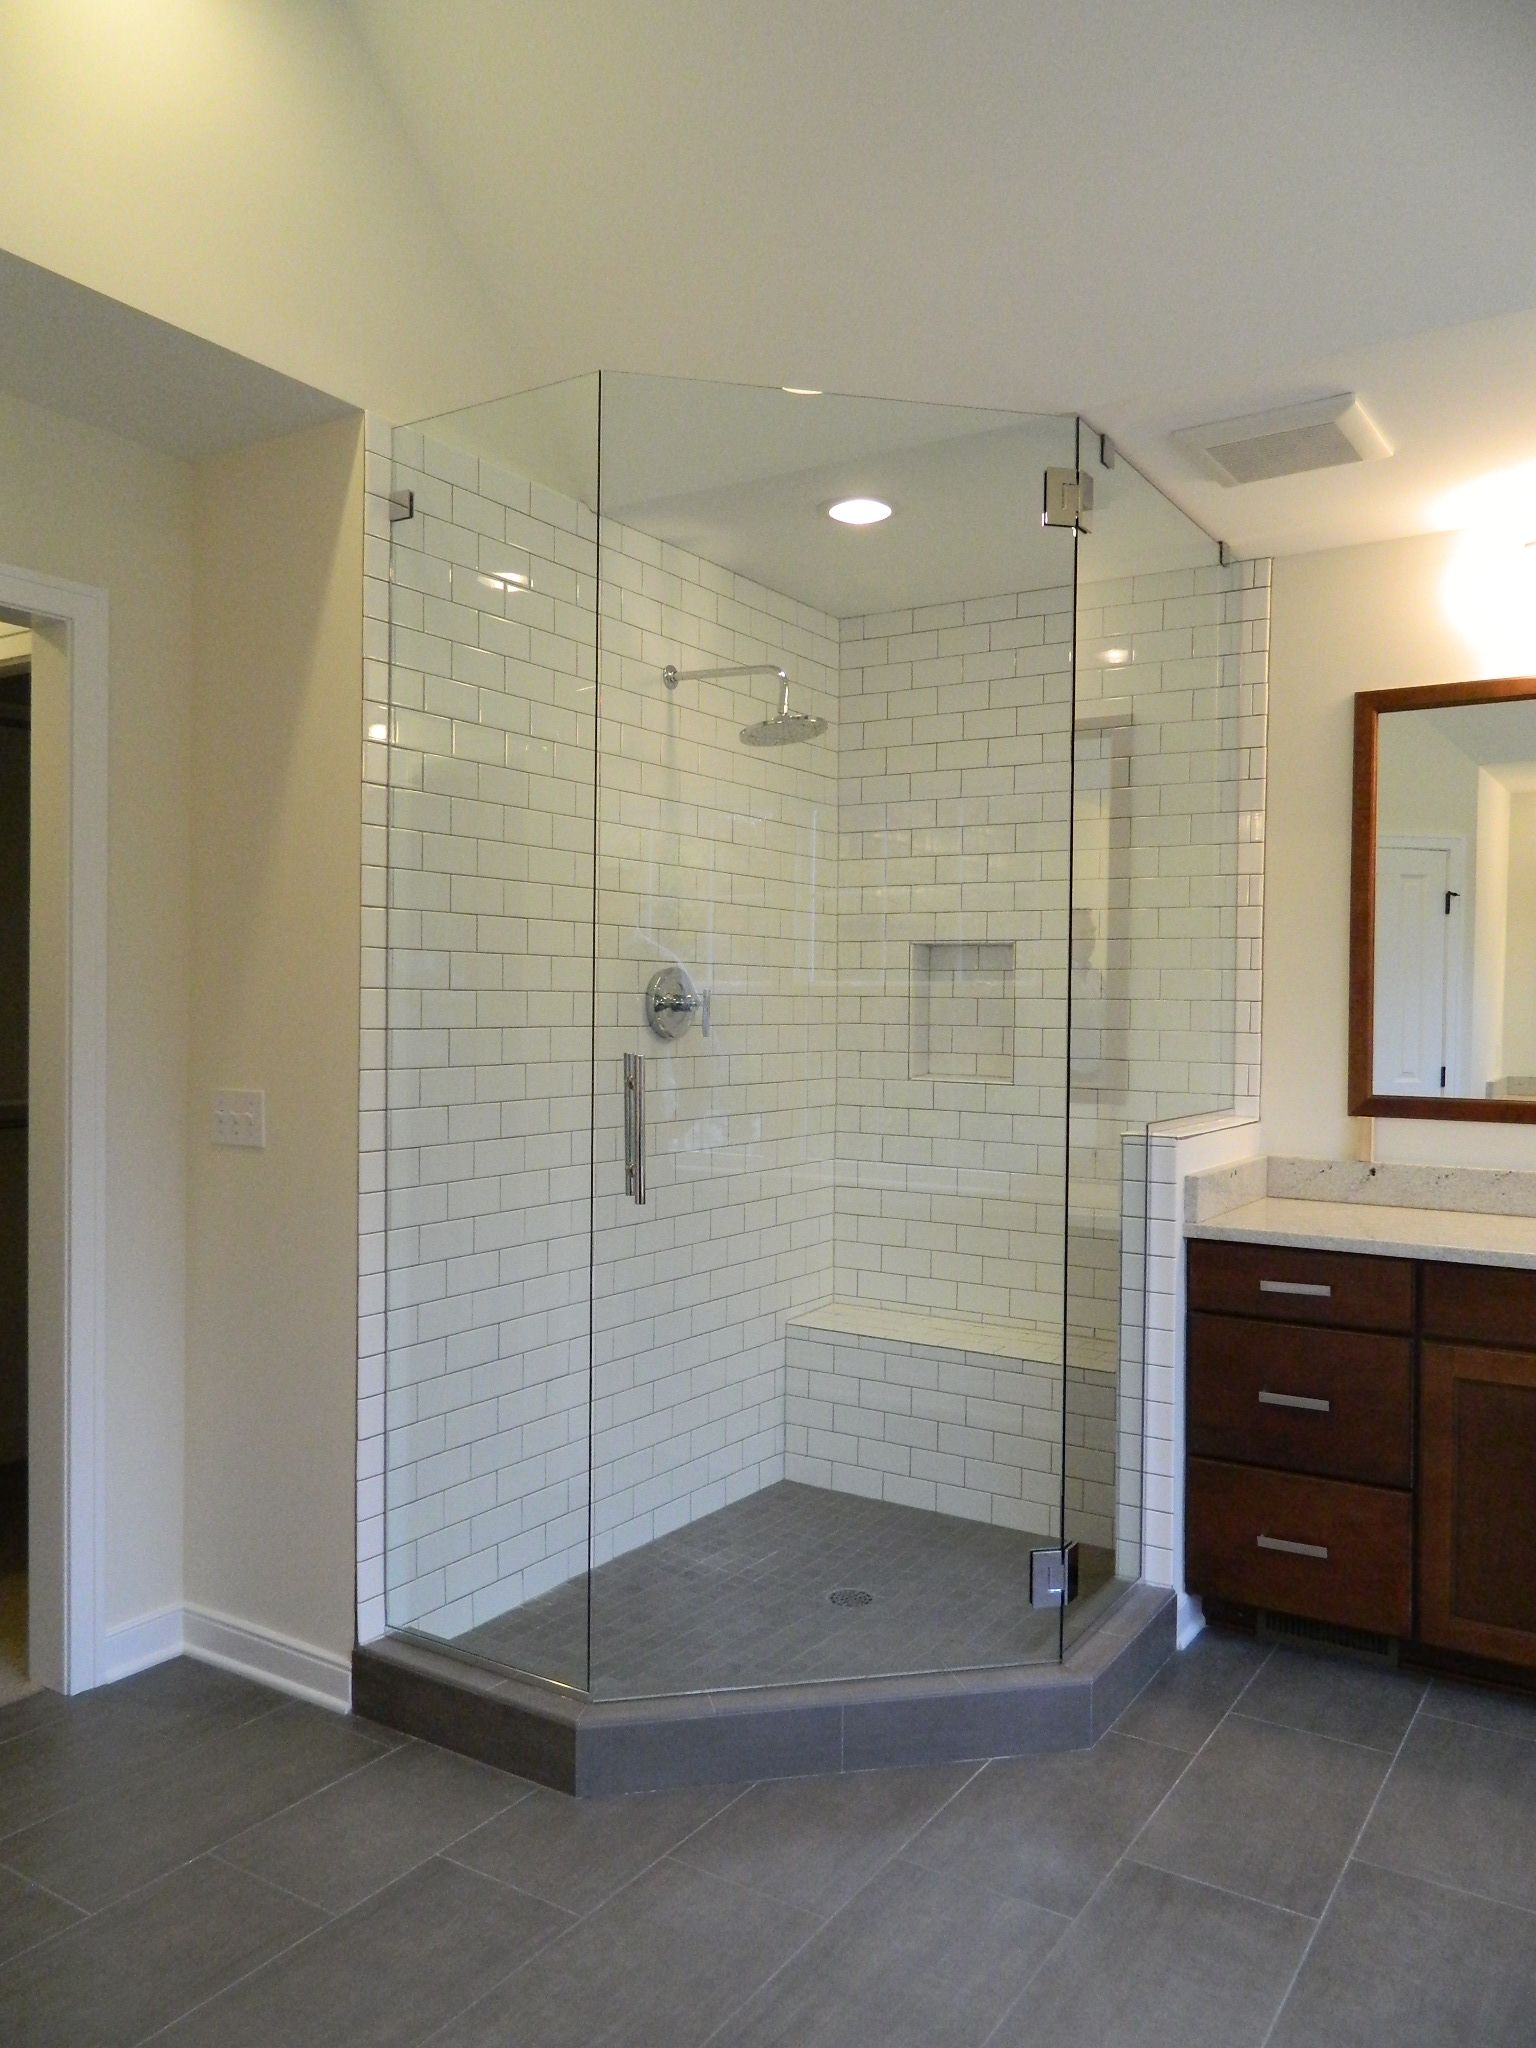 Shower Chair Vs Tub Bench Table And Rental Homestead Bathroom Remodel Master